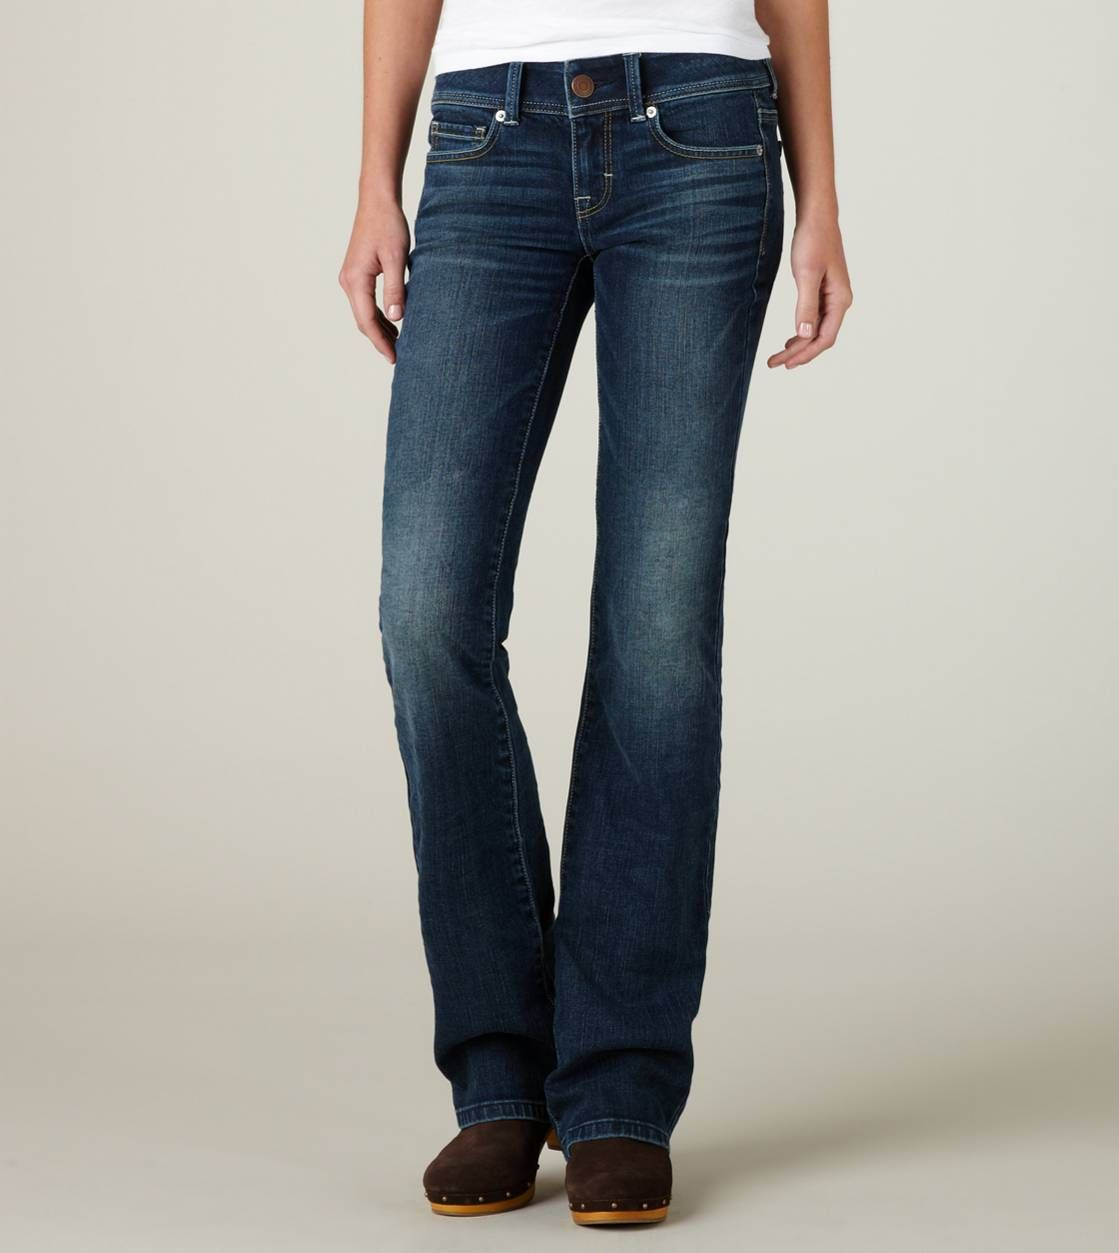 527f57c9afa AE Flex Boot Jean | In My closet Now | Jeans, Jeans style, Bootleg jeans